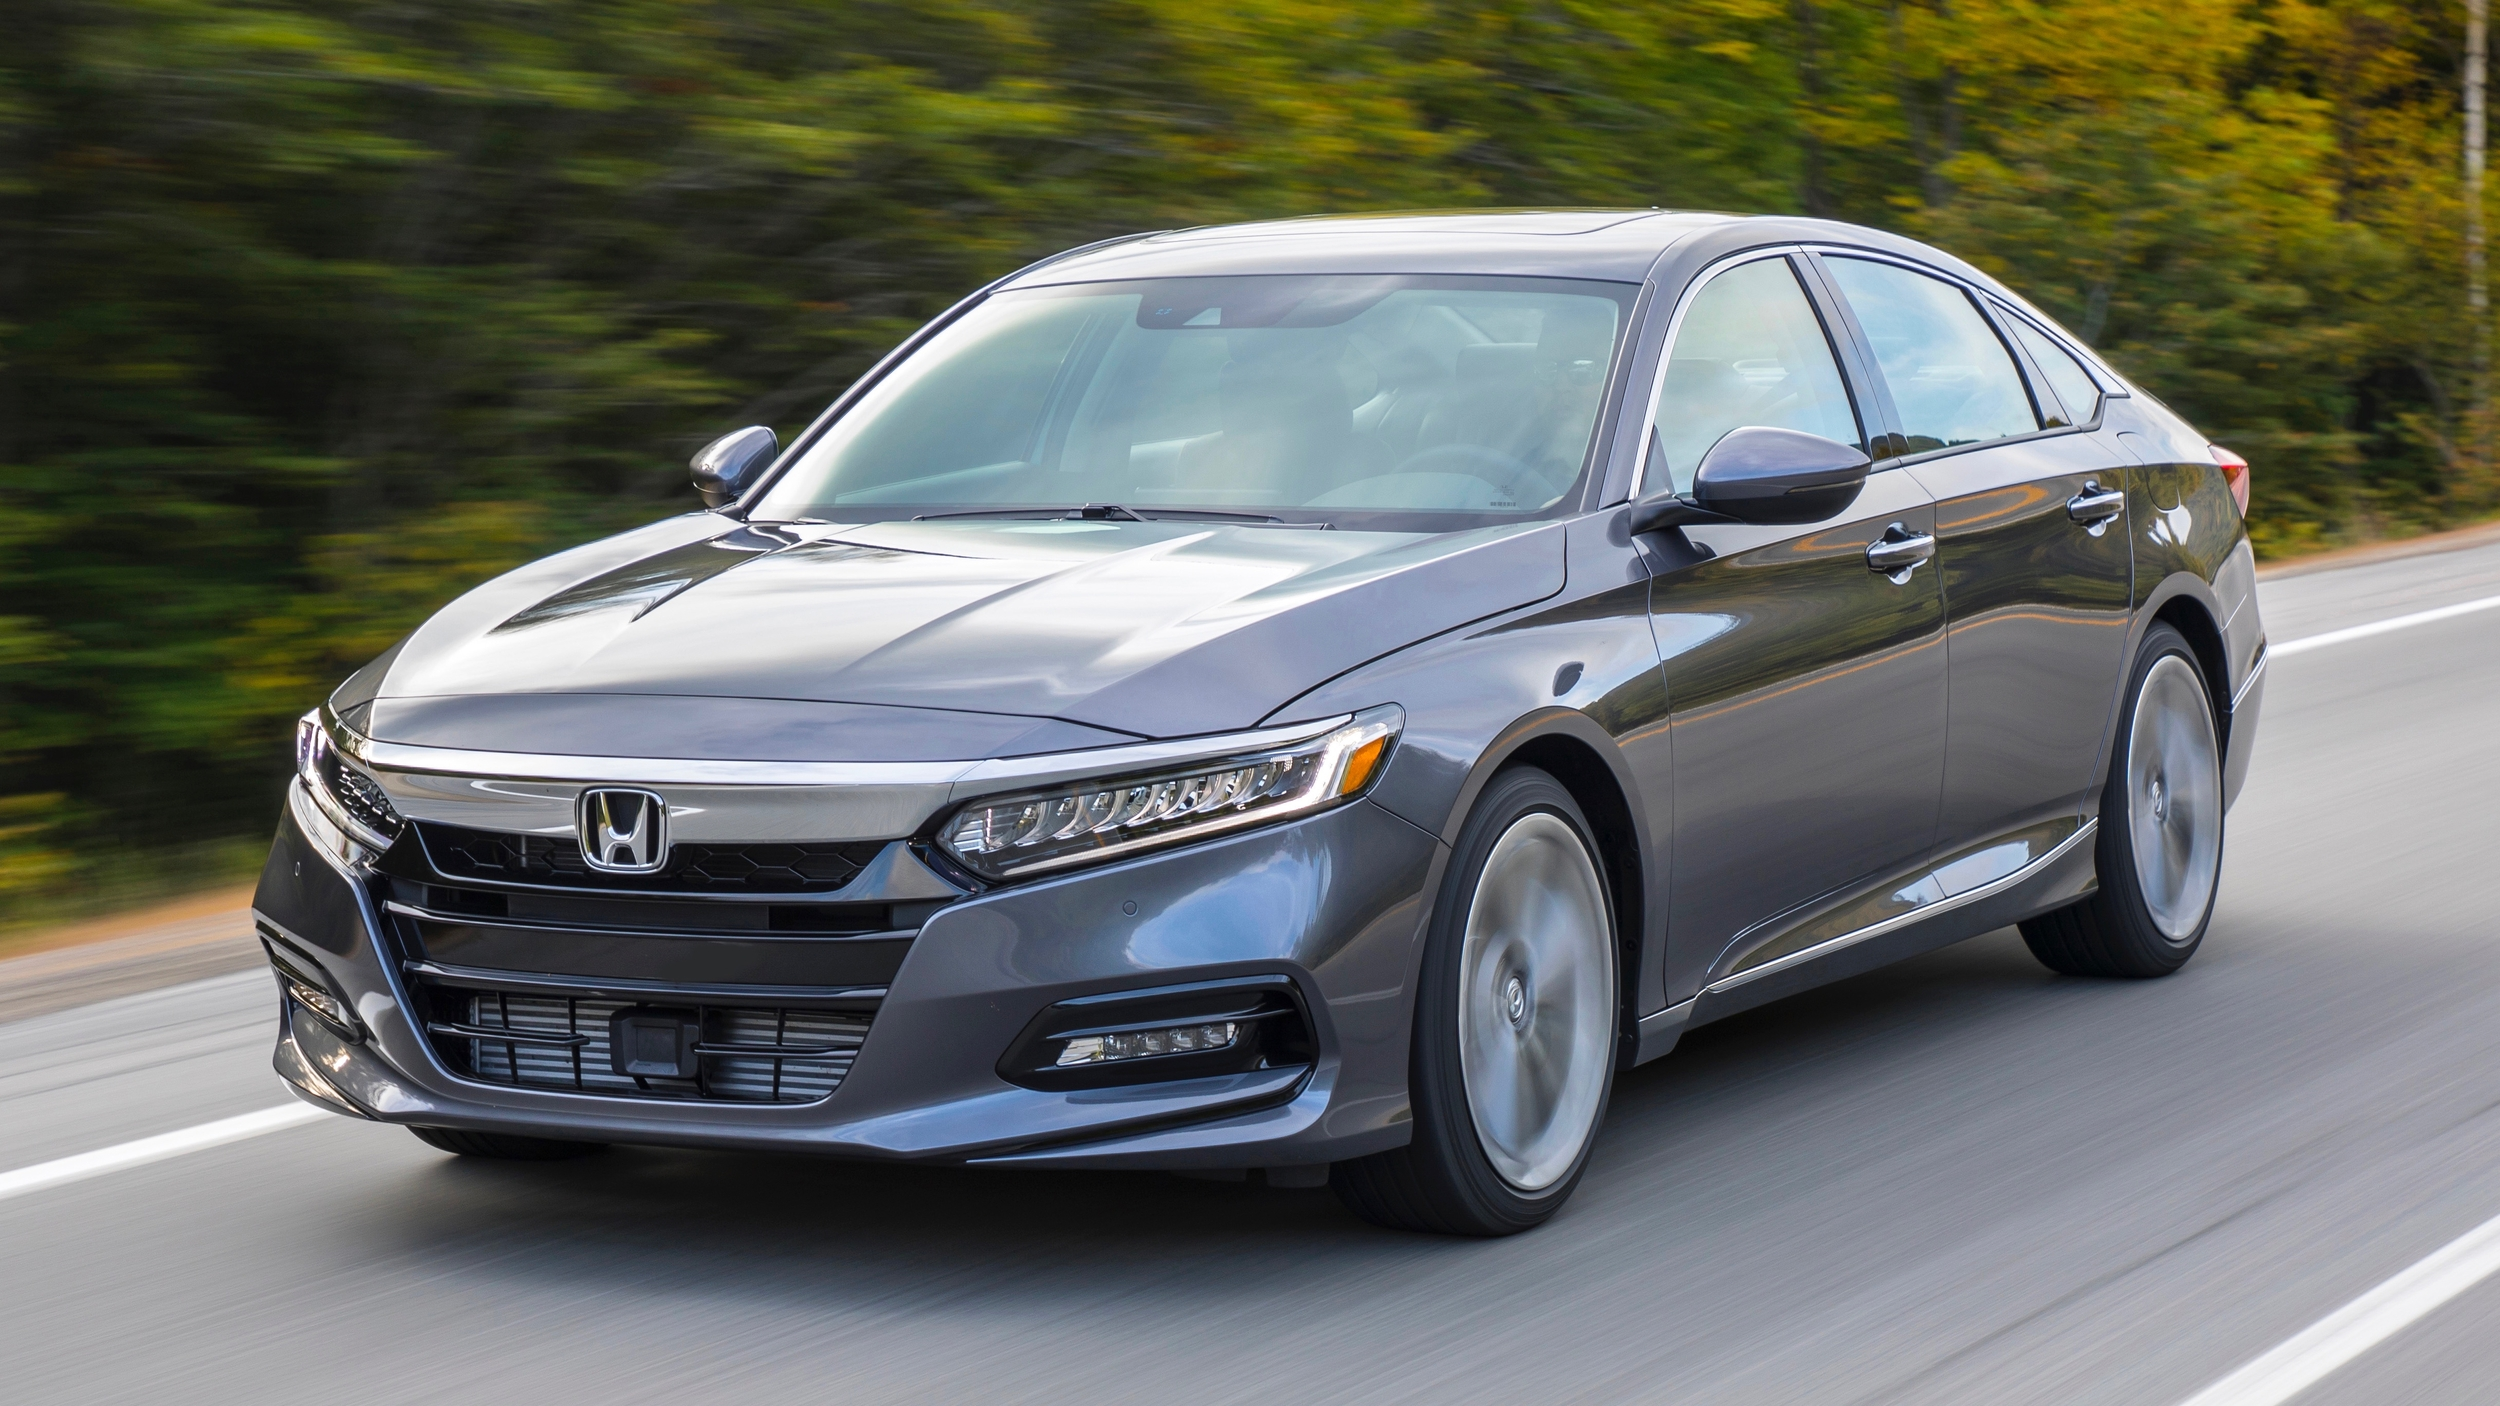 2019 Honda Accord Touring 2 0t Review Performance Comfort Fuel Economy Design Autoblog